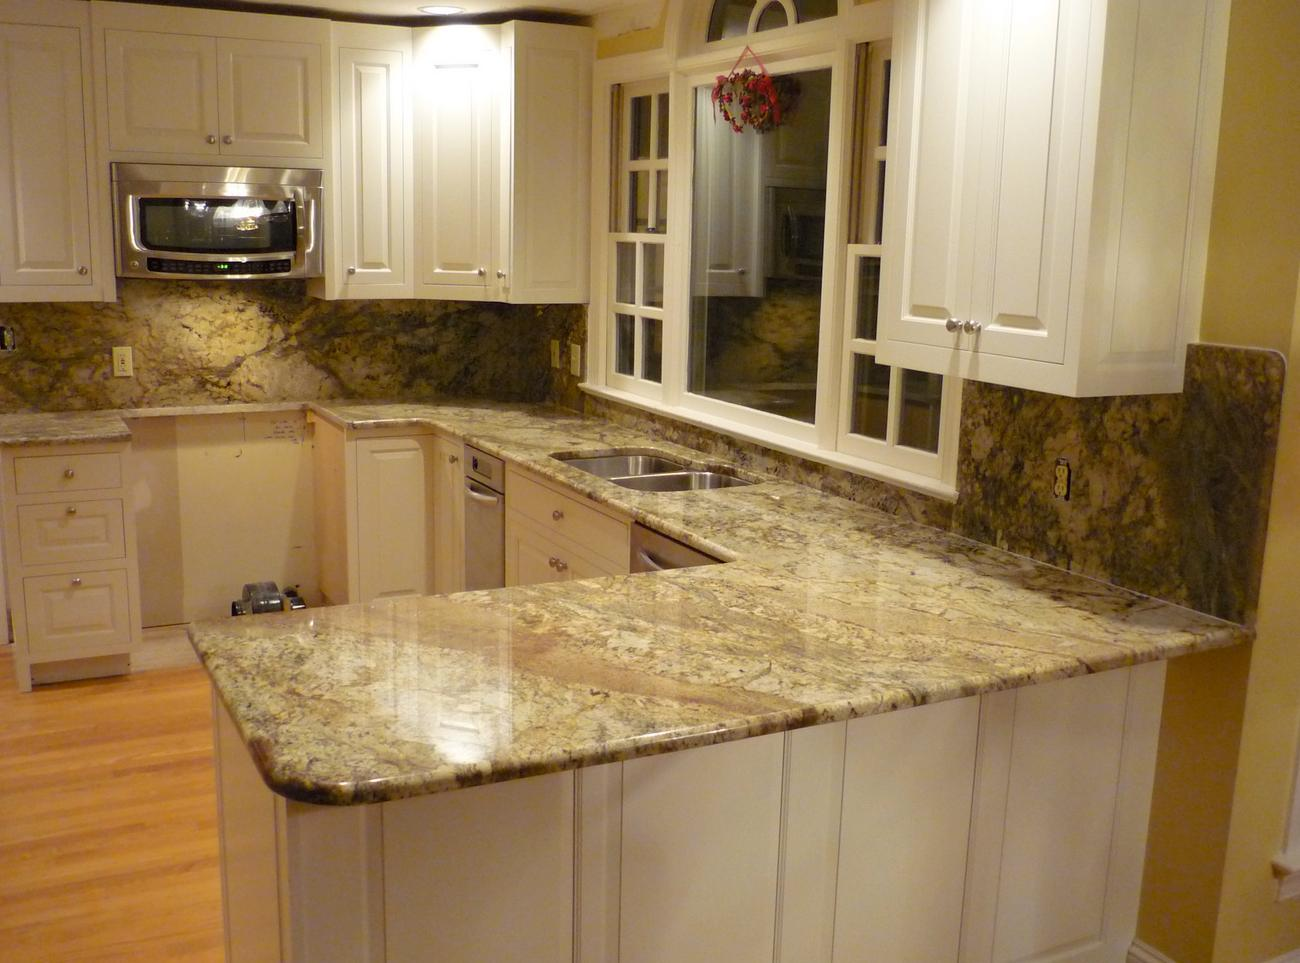 Kitchen Cabinets And Countertops Remodel Austin Cost